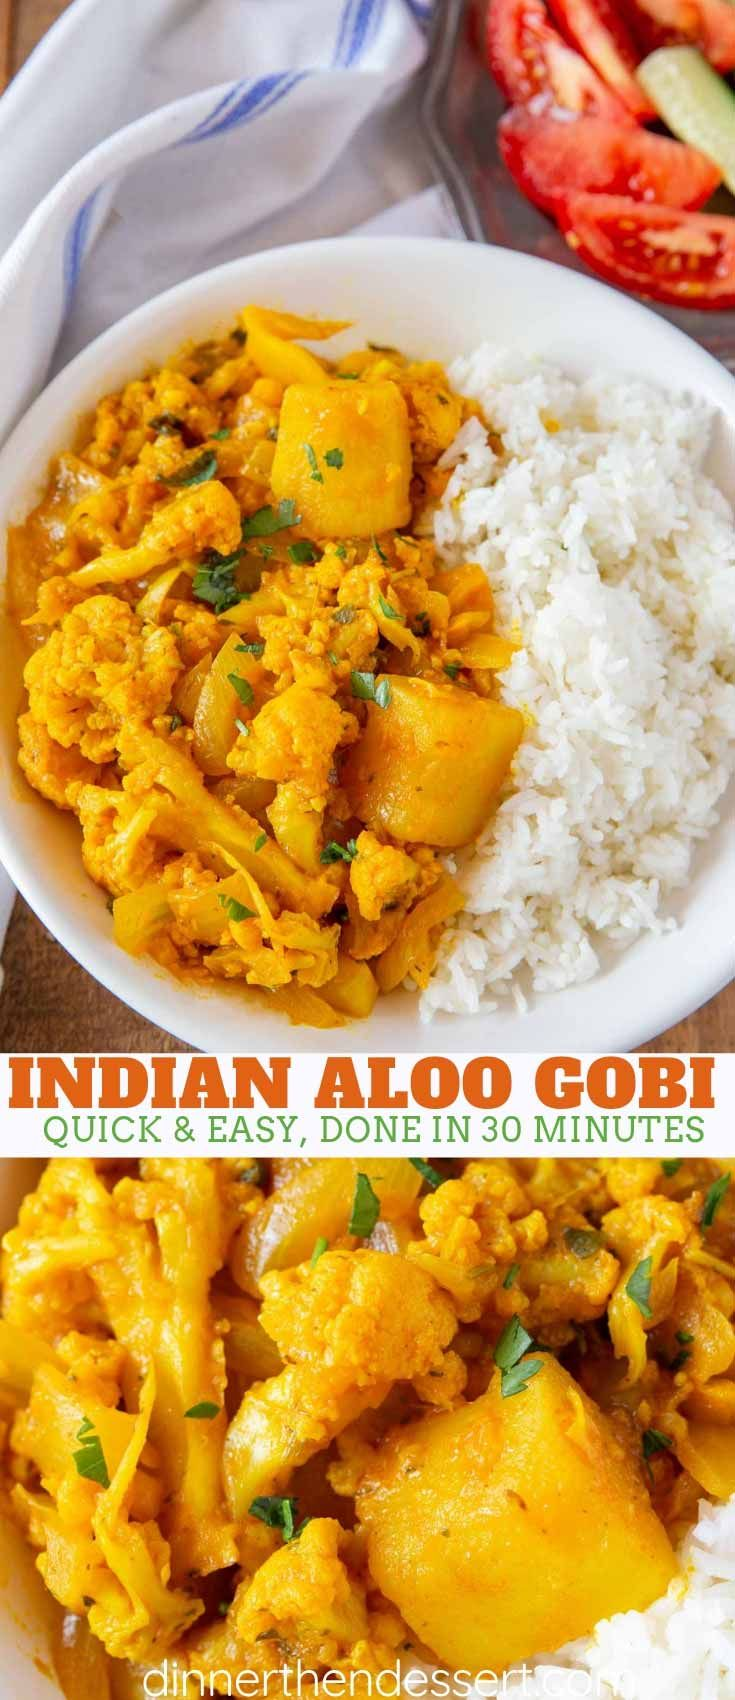 Aloo Gobi is the PERFECT vegetarian dinner made with fresh cauliflower and potatoes steamed and sautéed with seven different spices, ready in under 30 minutes! #vegetarian #dinner #sidedish #Indian #vegan #curry #cauliflower #aloogobi #dinnerthendessert #indianfood